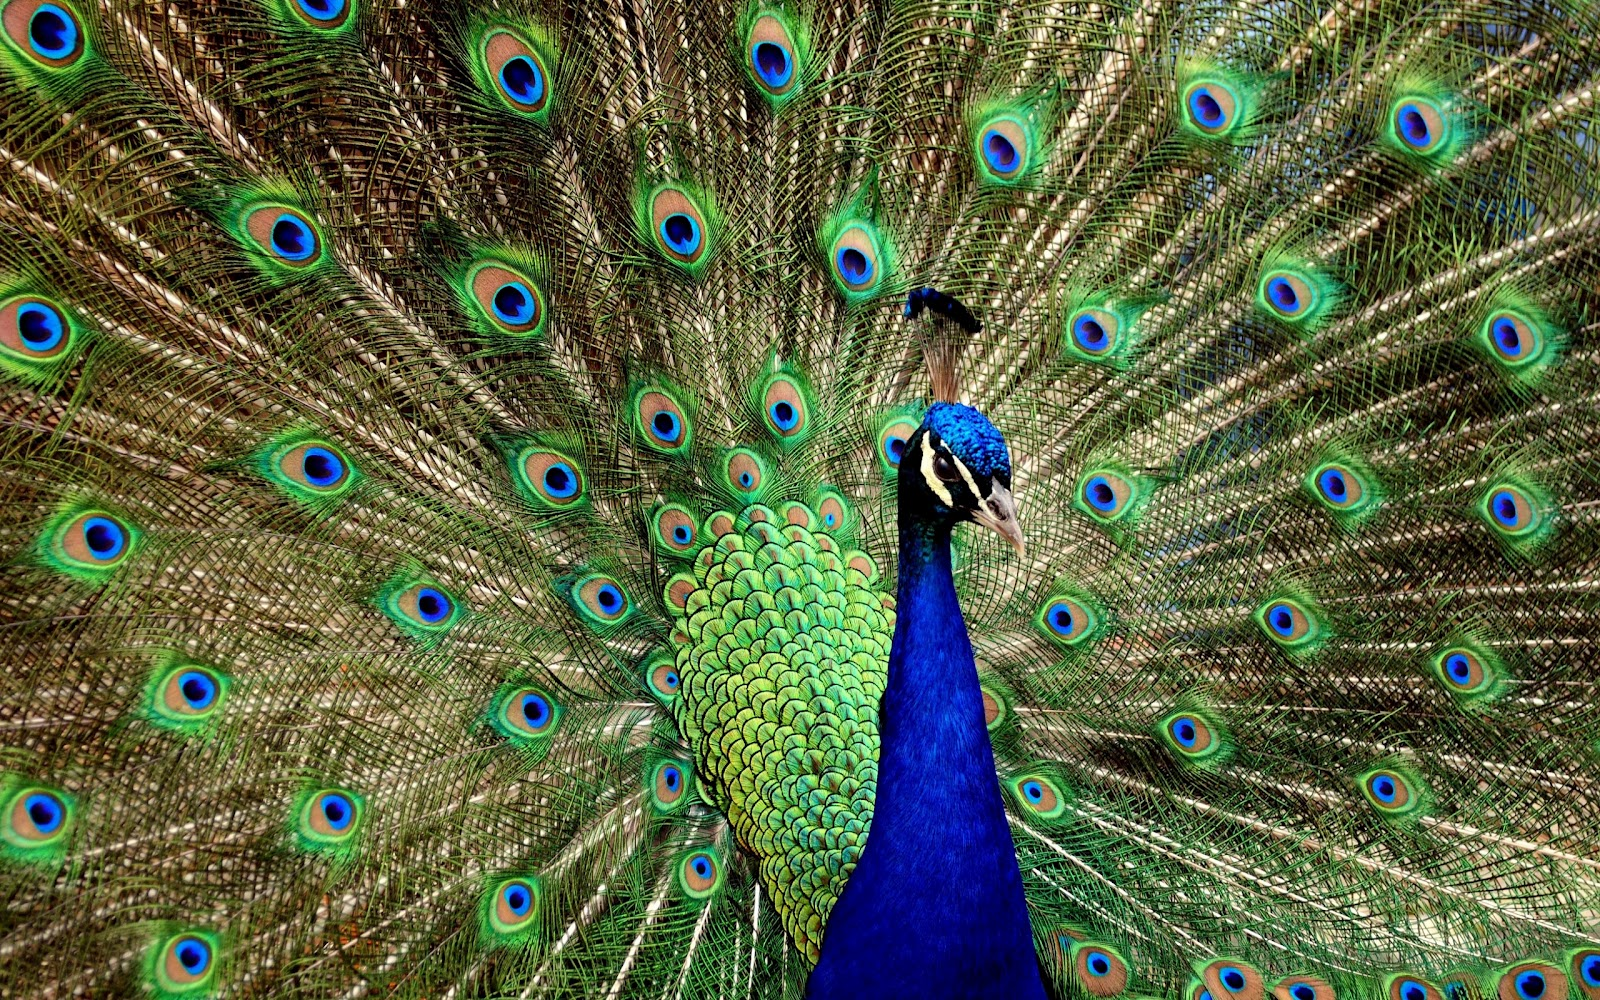 49+] Peacock Wallpaper for the House on WallpaperSafari